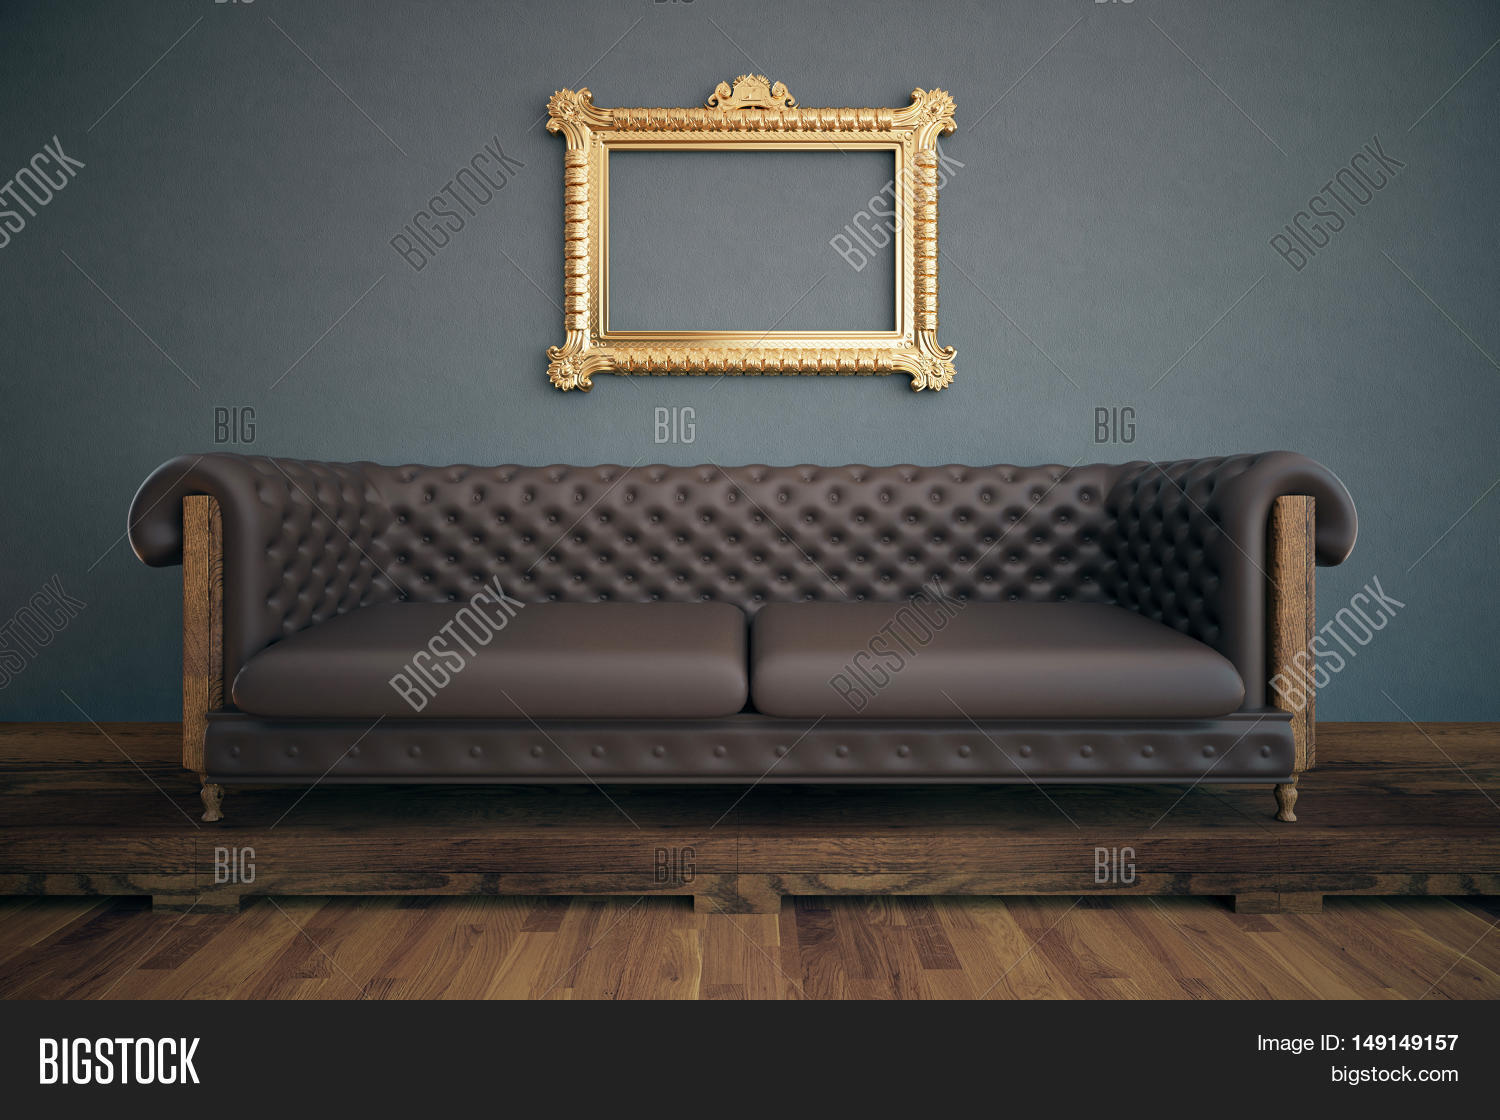 Terrific Front View Luxurious Image Photo Free Trial Bigstock Creativecarmelina Interior Chair Design Creativecarmelinacom